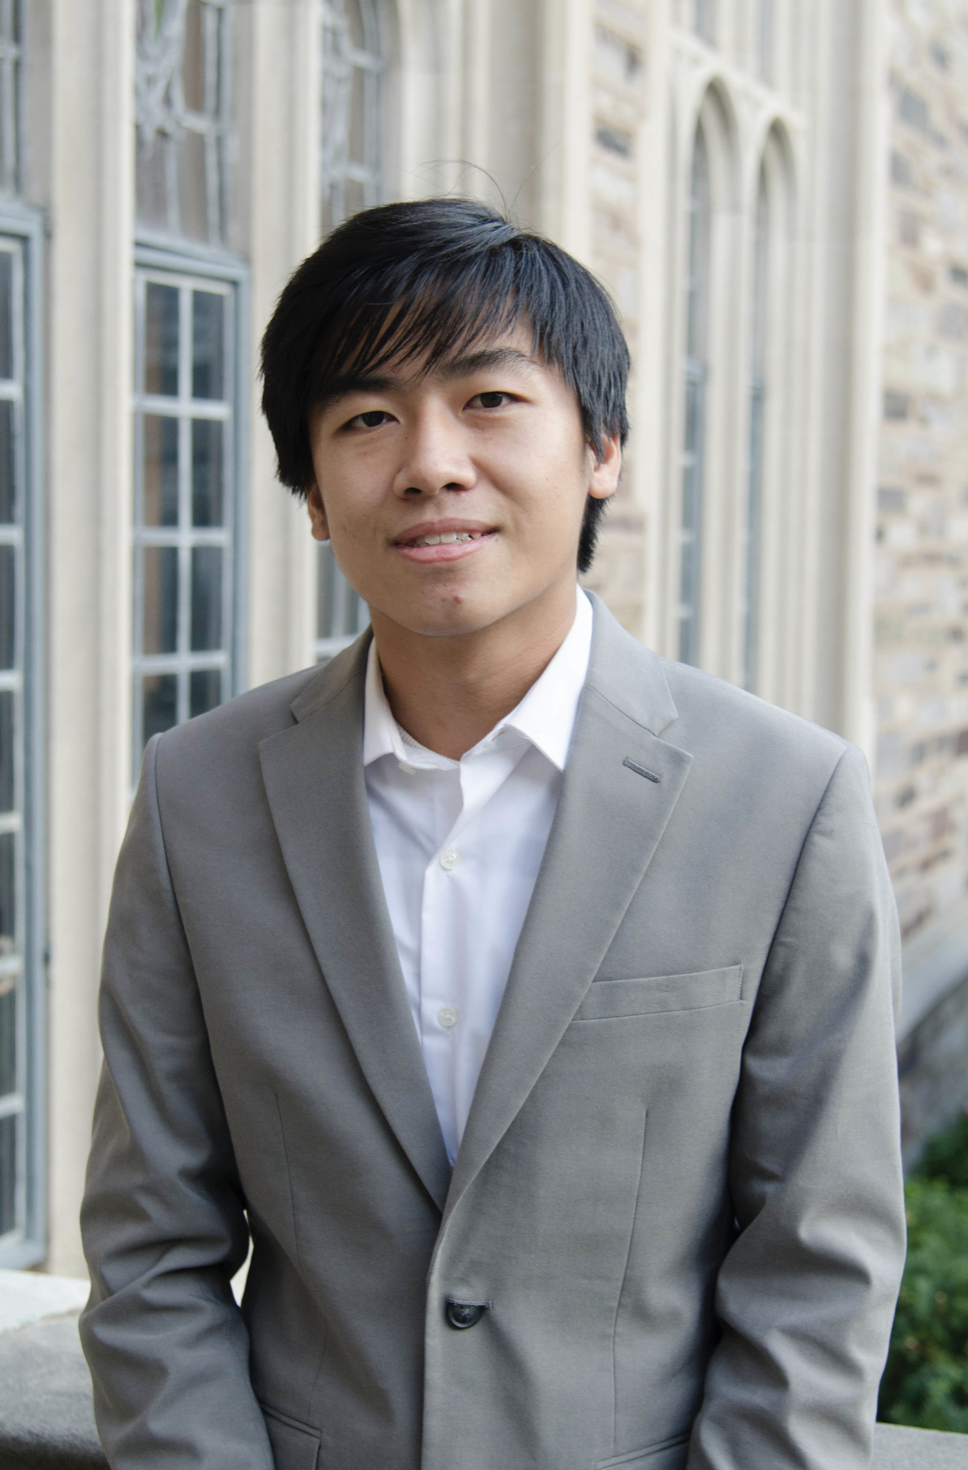 JACKIE DONG   Head of Web Management  Jackie is a junior in the Woodrow Wilson School. Having lived in China for three years, he has tons of experience interacting with Chinese citizens on a grass-roots level. He hopes to make an impact in U.S.-China relations or to pursue possible business endeavors with China after Princeton.